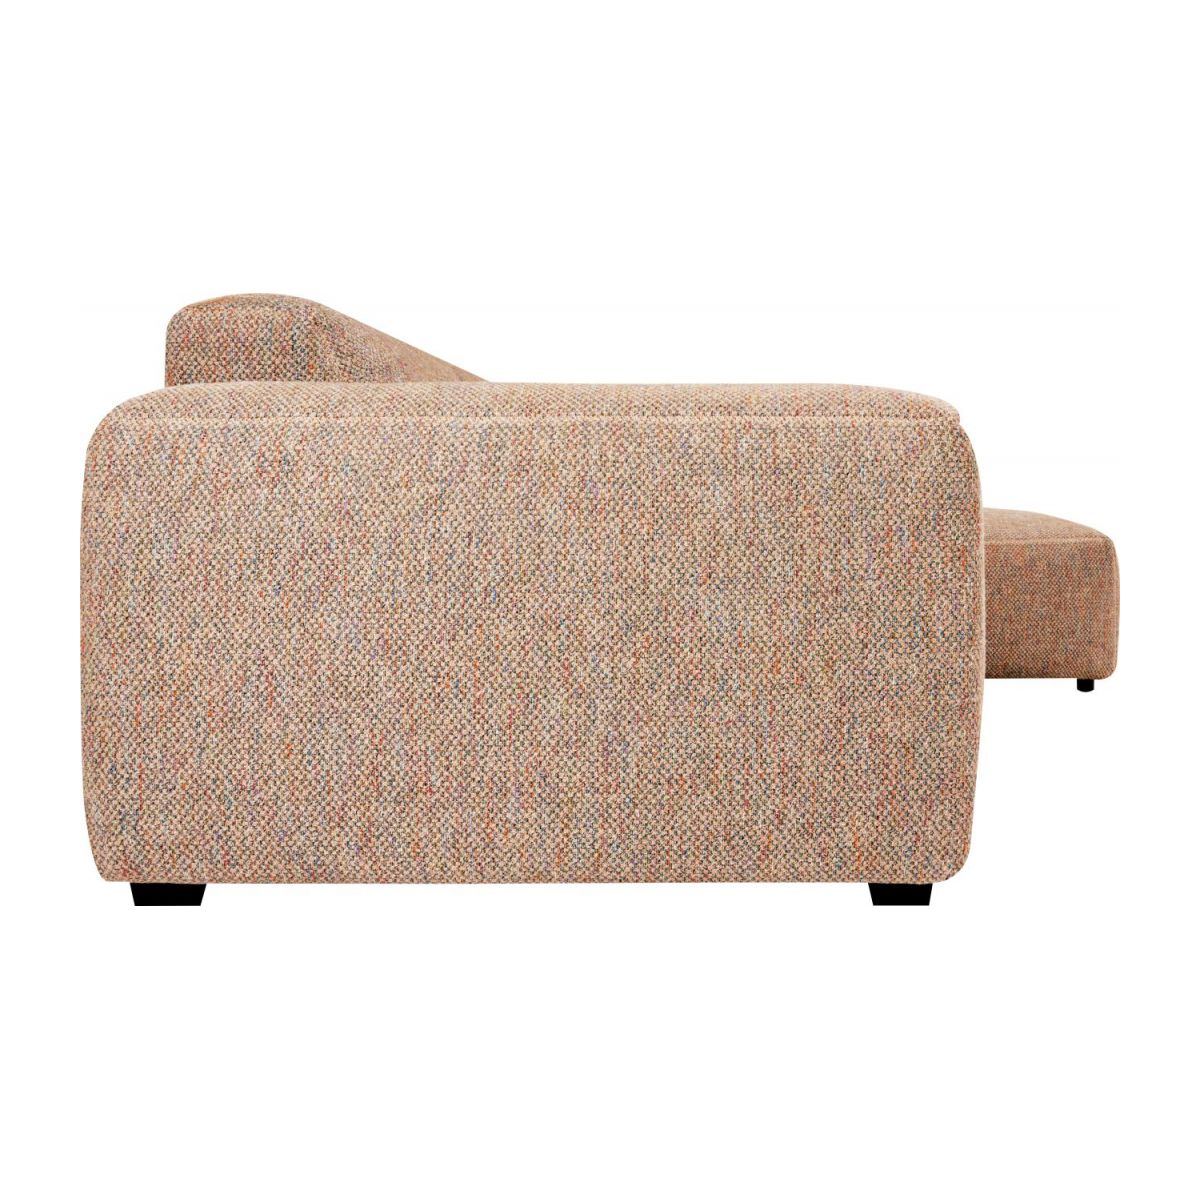 3 seater sofa with right chaise longue in Bellagio fabric, passion orange n°2